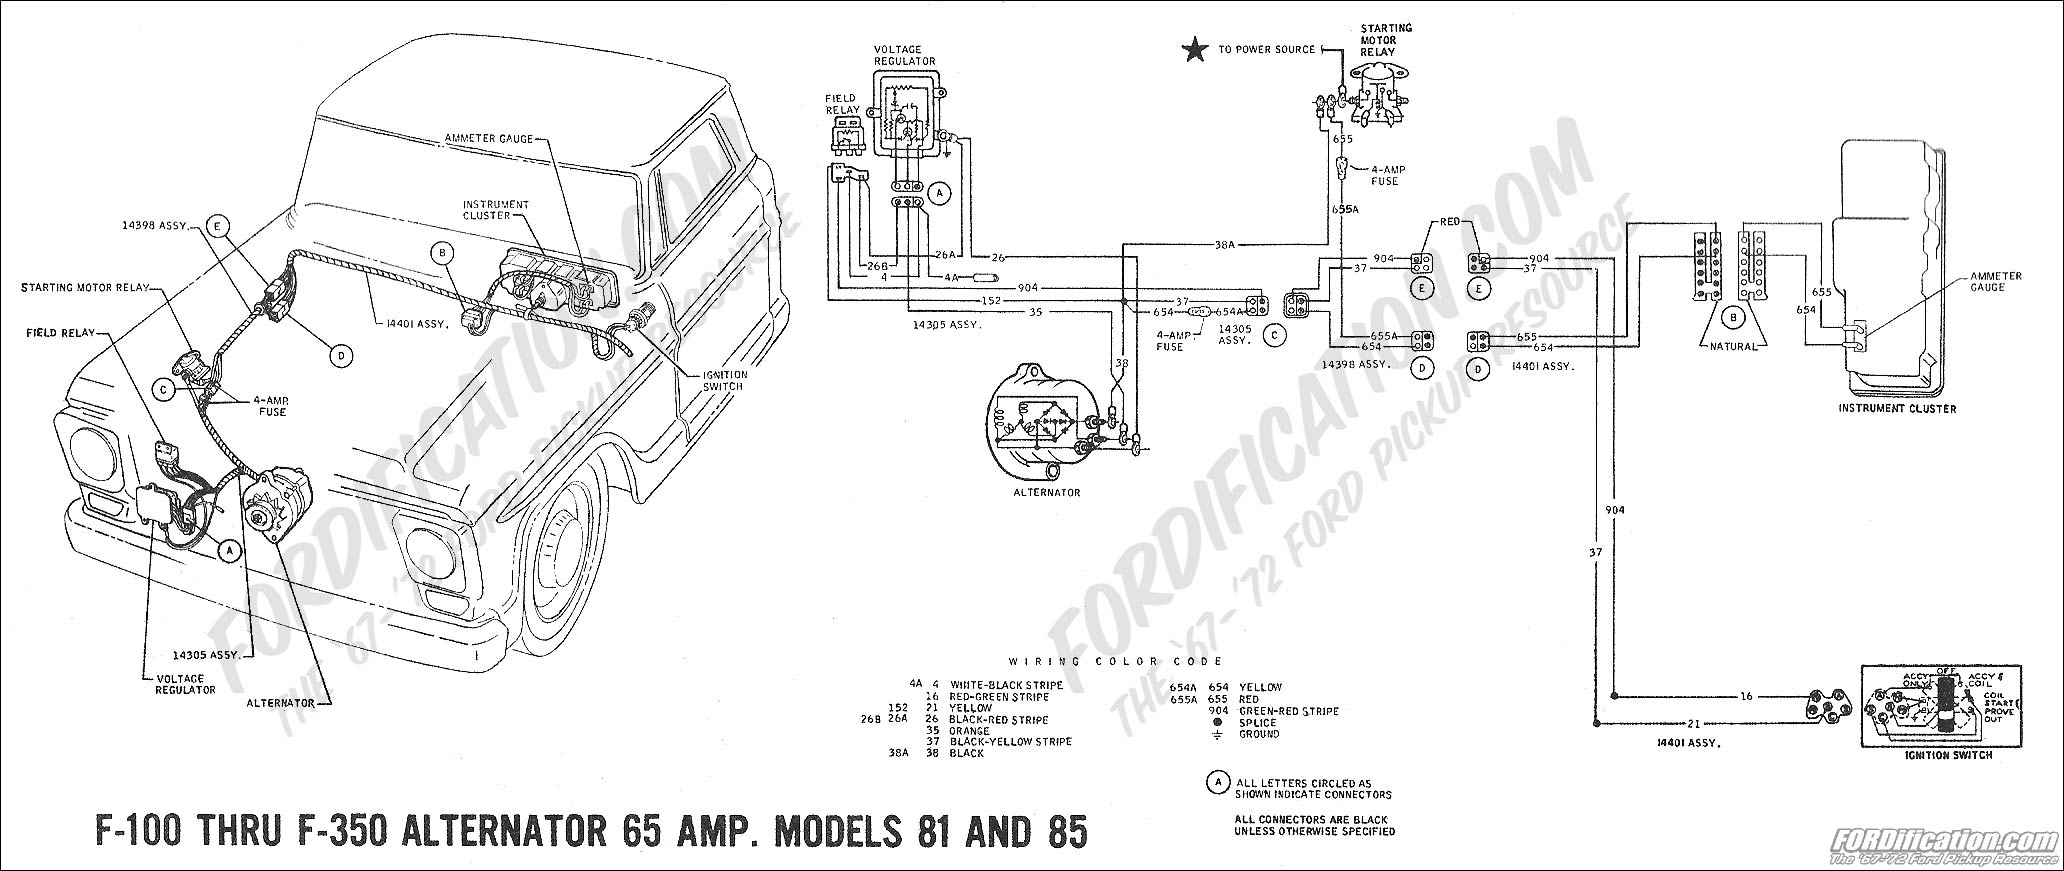 2004 Ford Ranger Alternator Wiring Diagram furthermore 24493 My New Old Ford likewise Schematics i together with Showthread as well Schematics i. on 85 f150 alternator wiring diagram